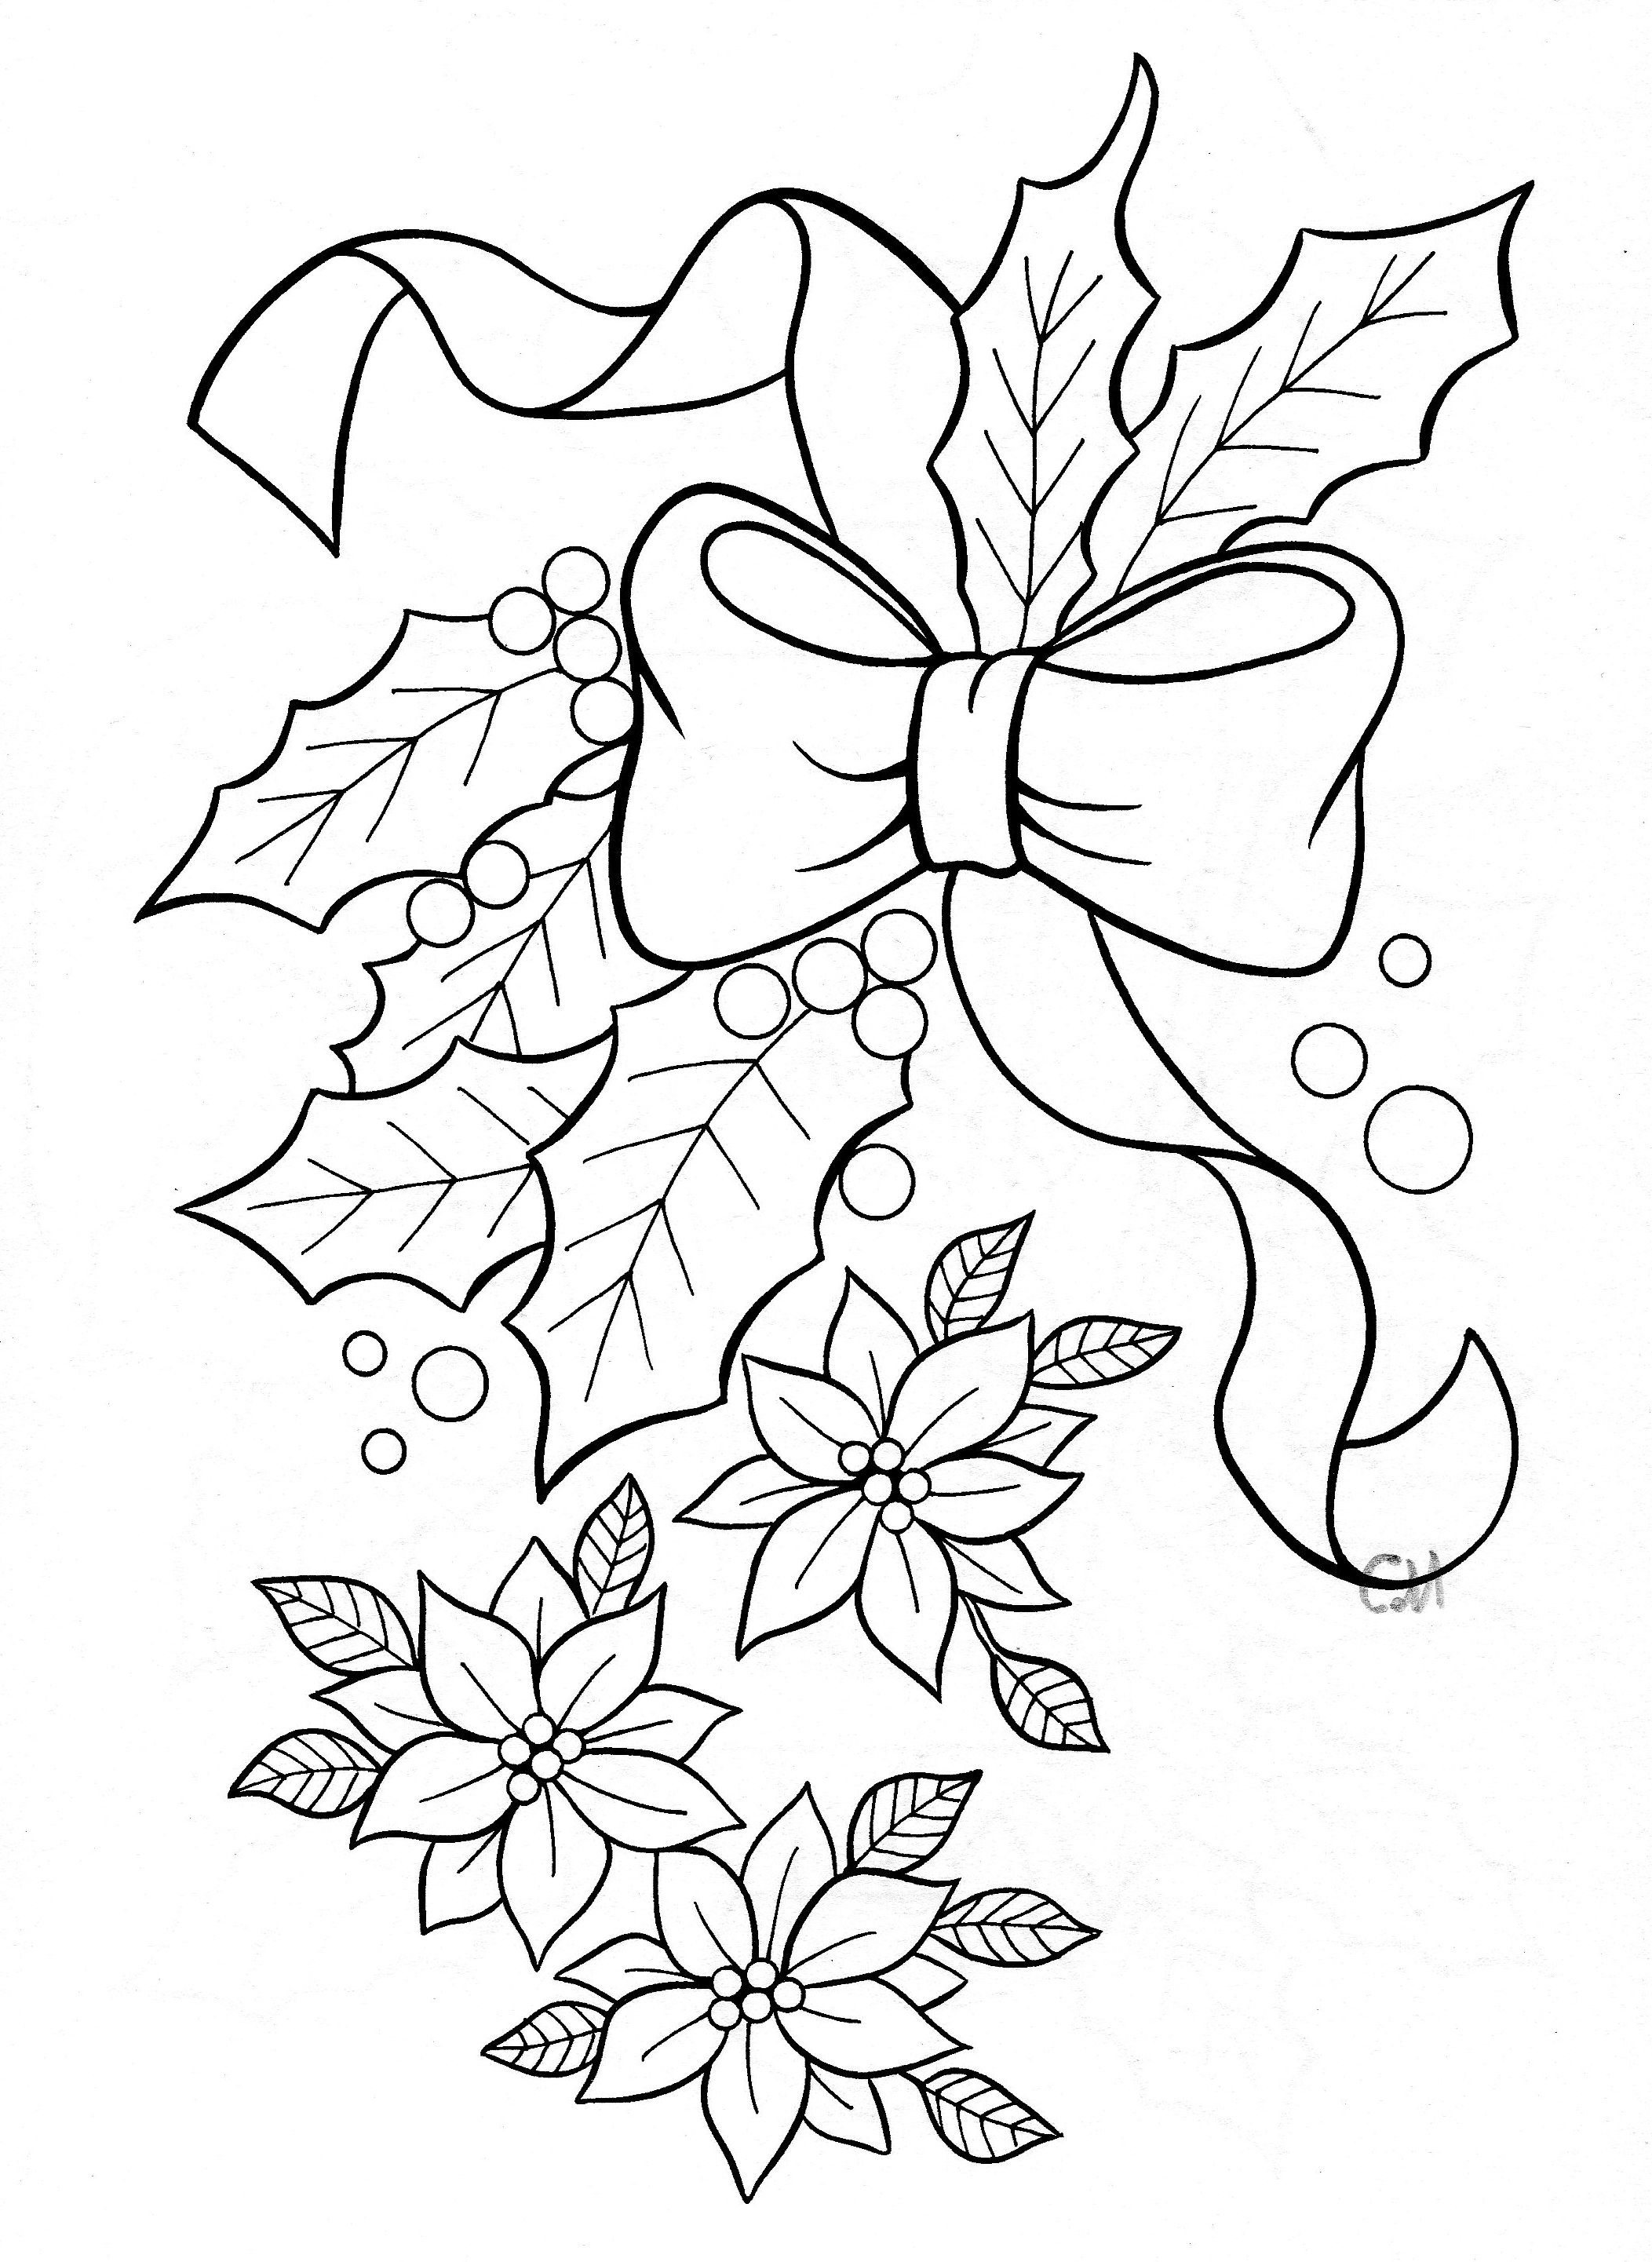 poinsettia coloring pages leaves of poinsettia coloring page color luna coloring pages poinsettia